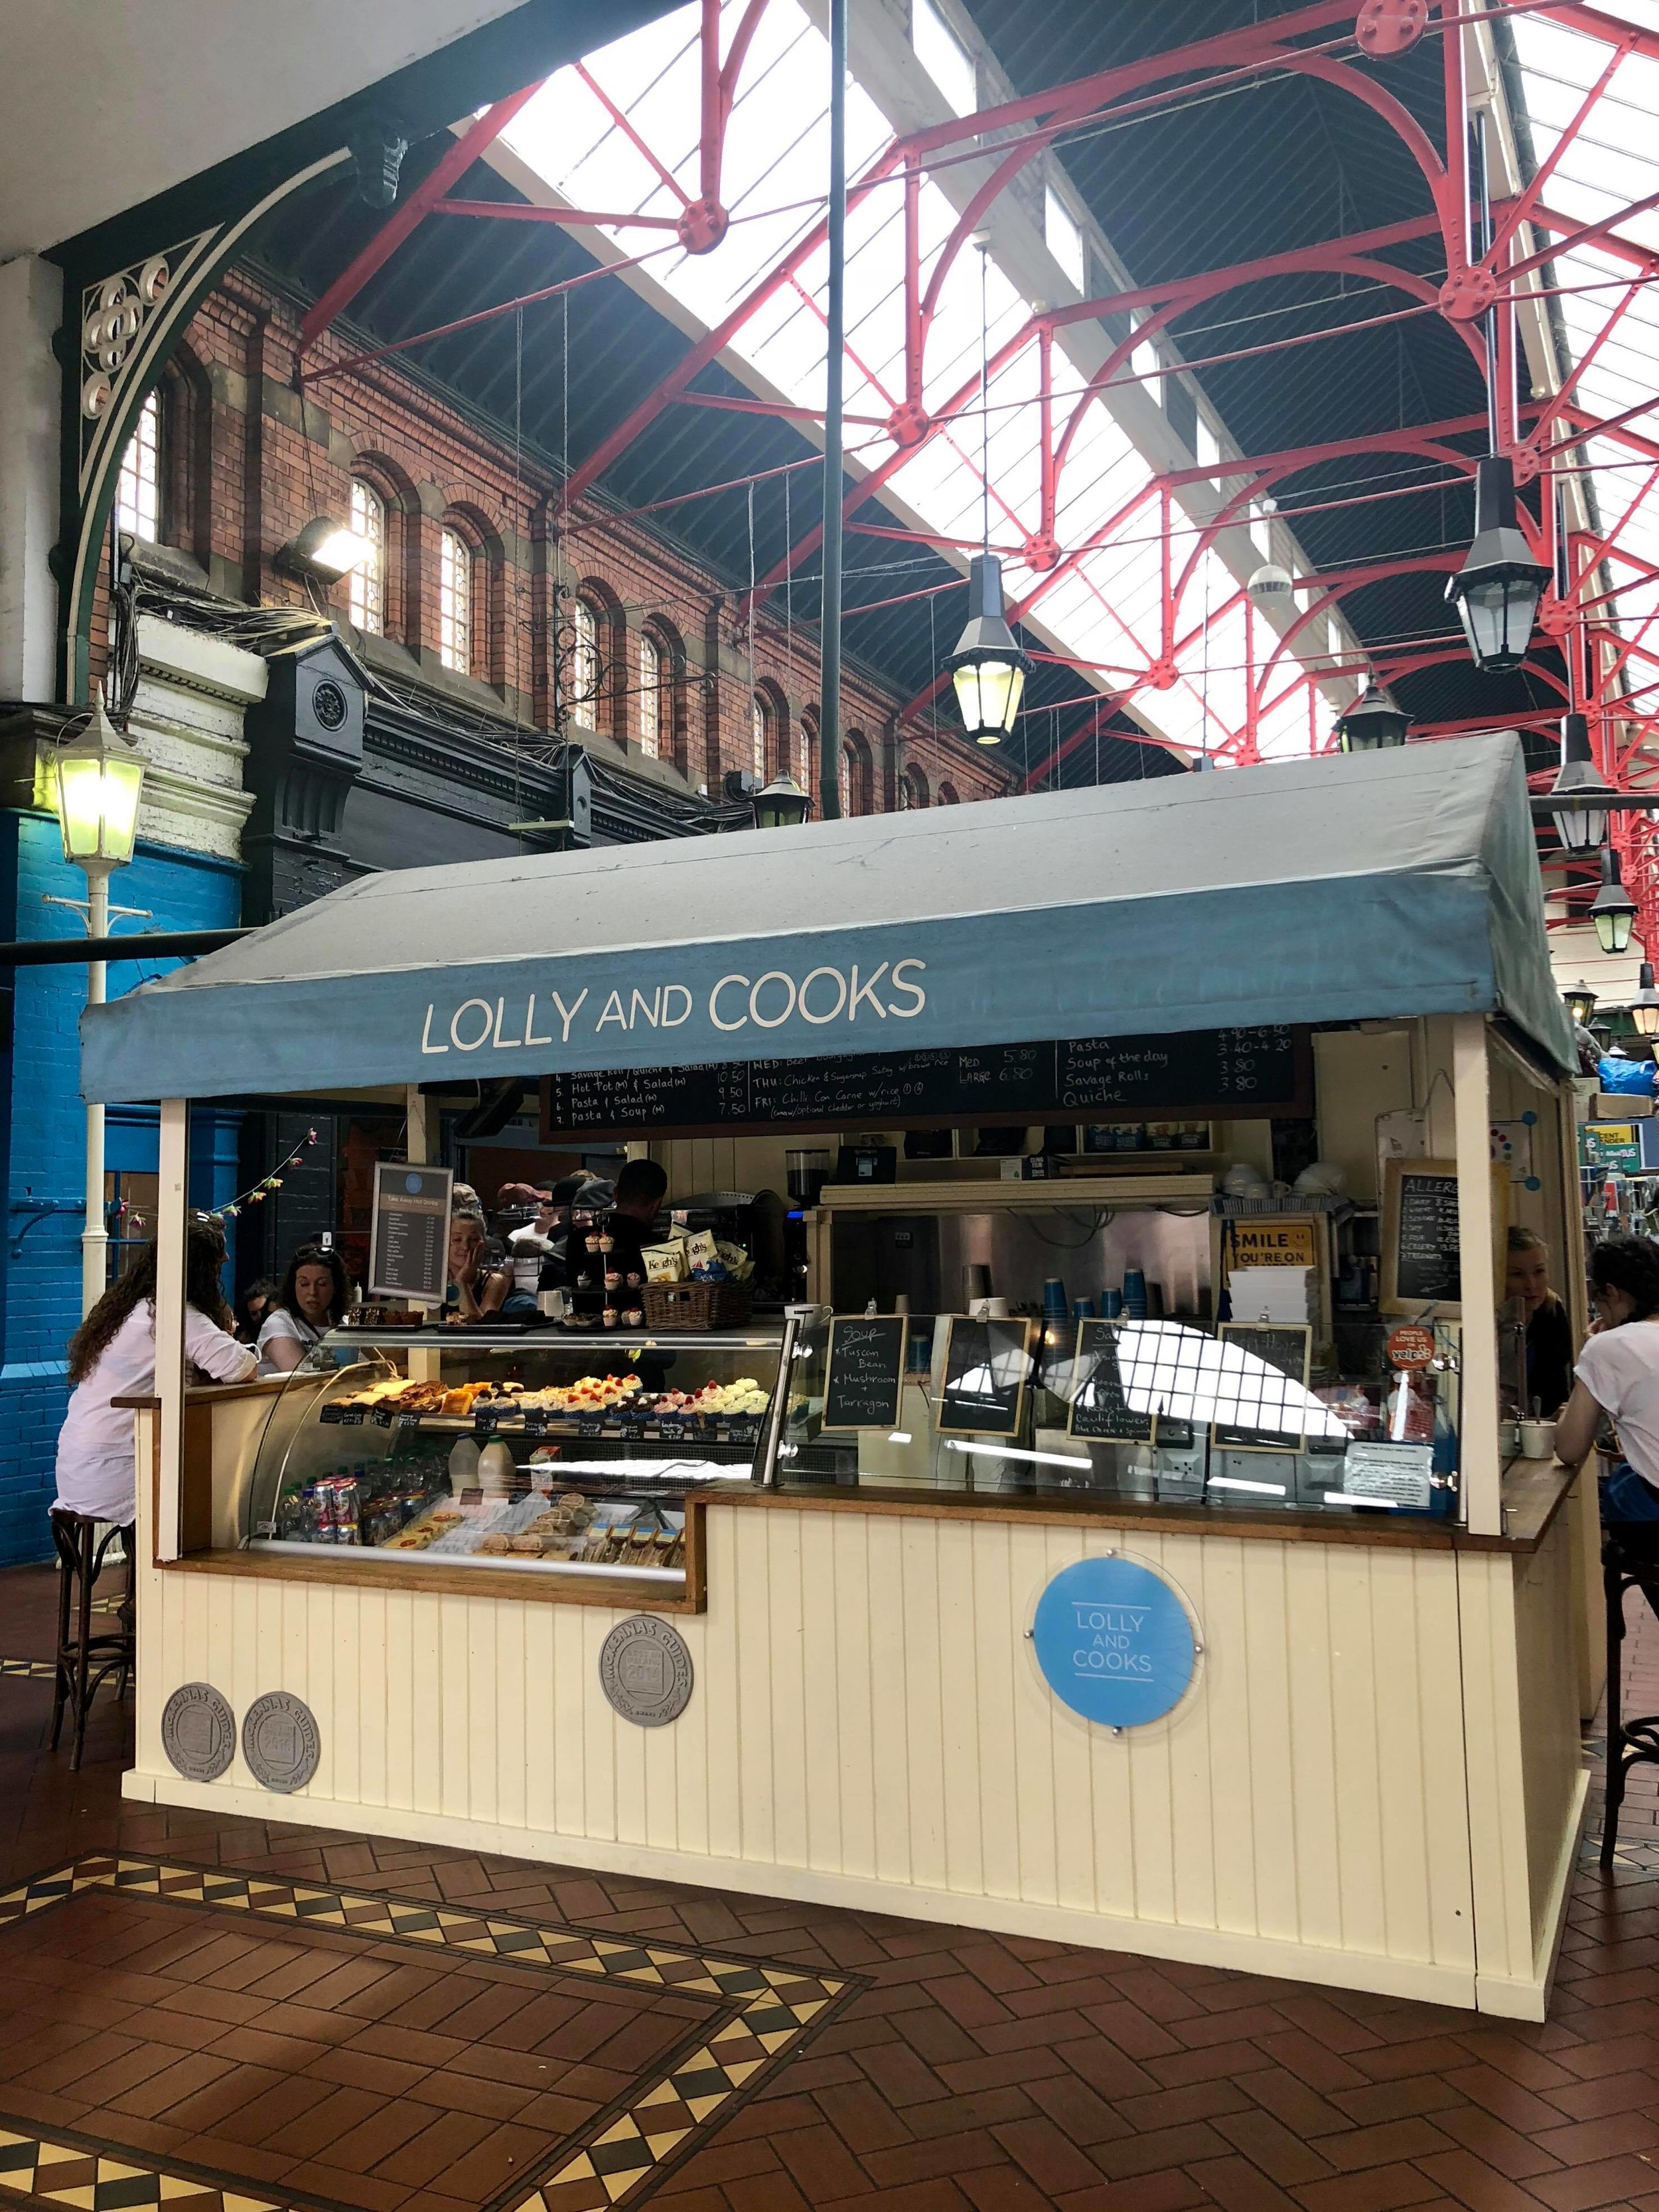 - Located in the Market Arcade in the city-center (seen above), Lolly and Cooks has a stand in the middle of the hall here.